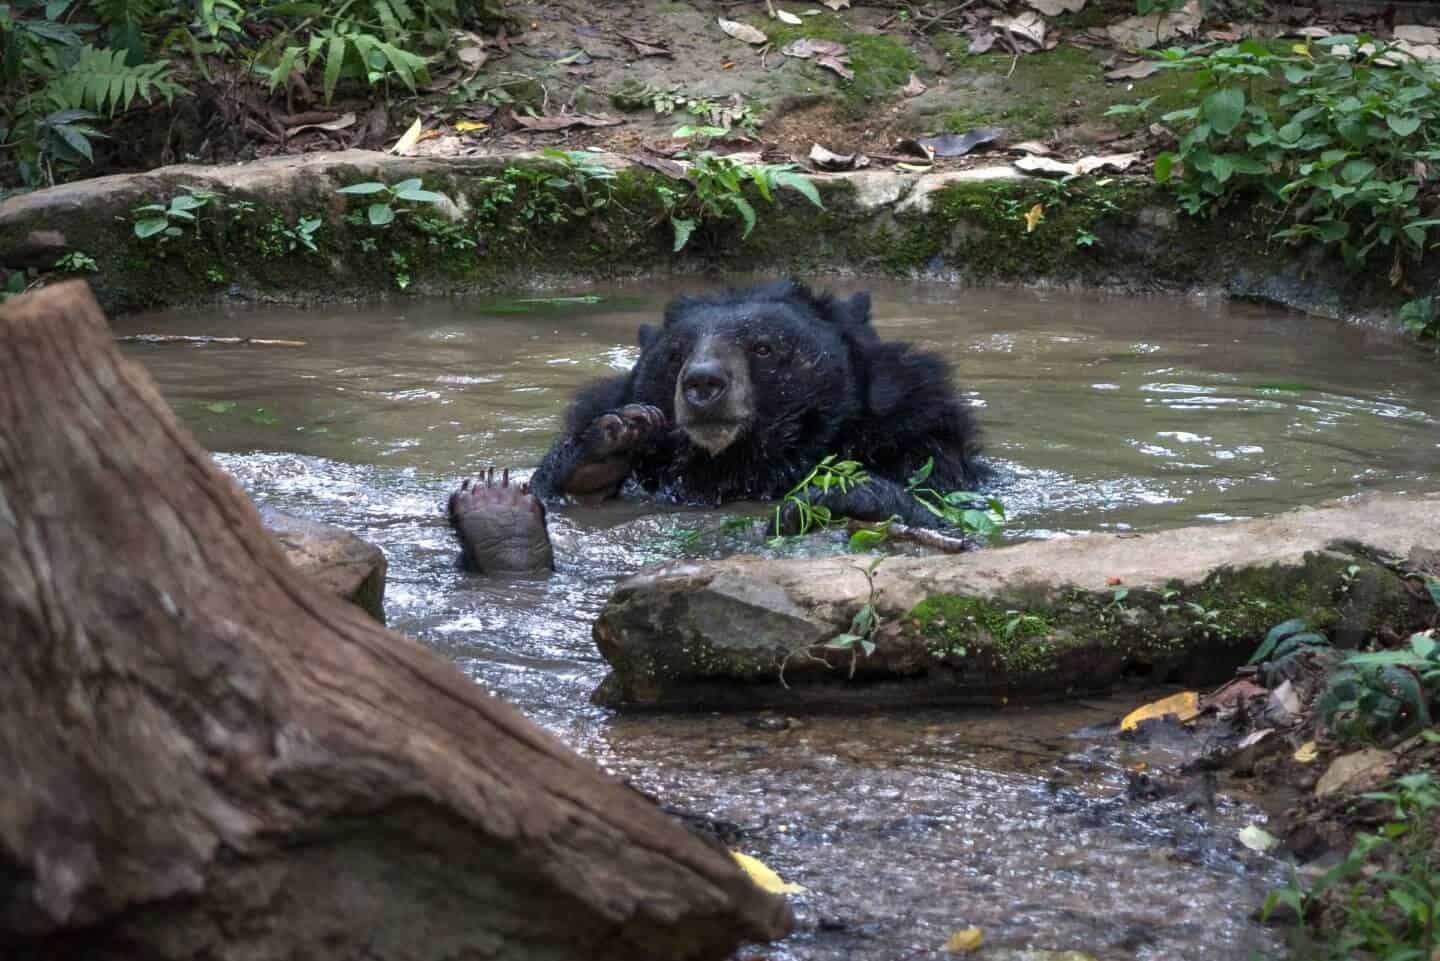 A moon bear relaxing poolside at the Kuang Si Bear Sanctuary.